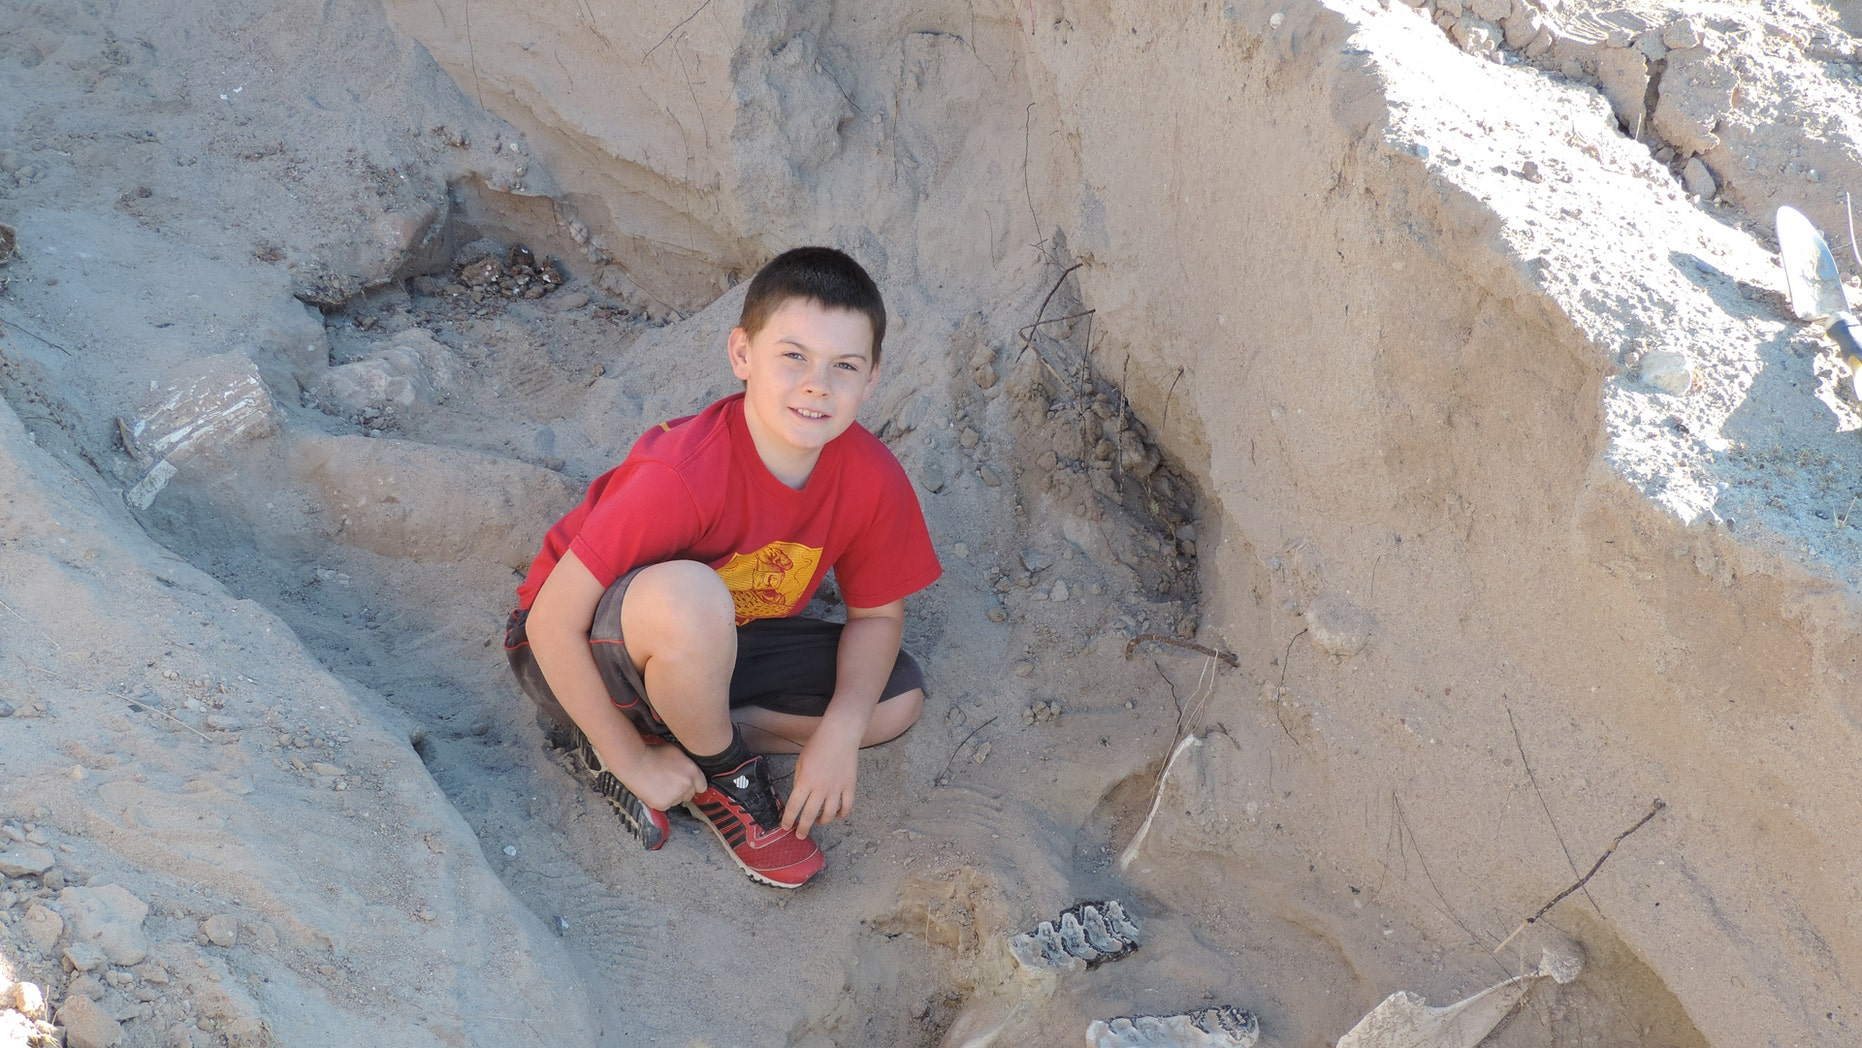 Jude Sparks with the dinosaur fossil (Credit: Peter Houde)